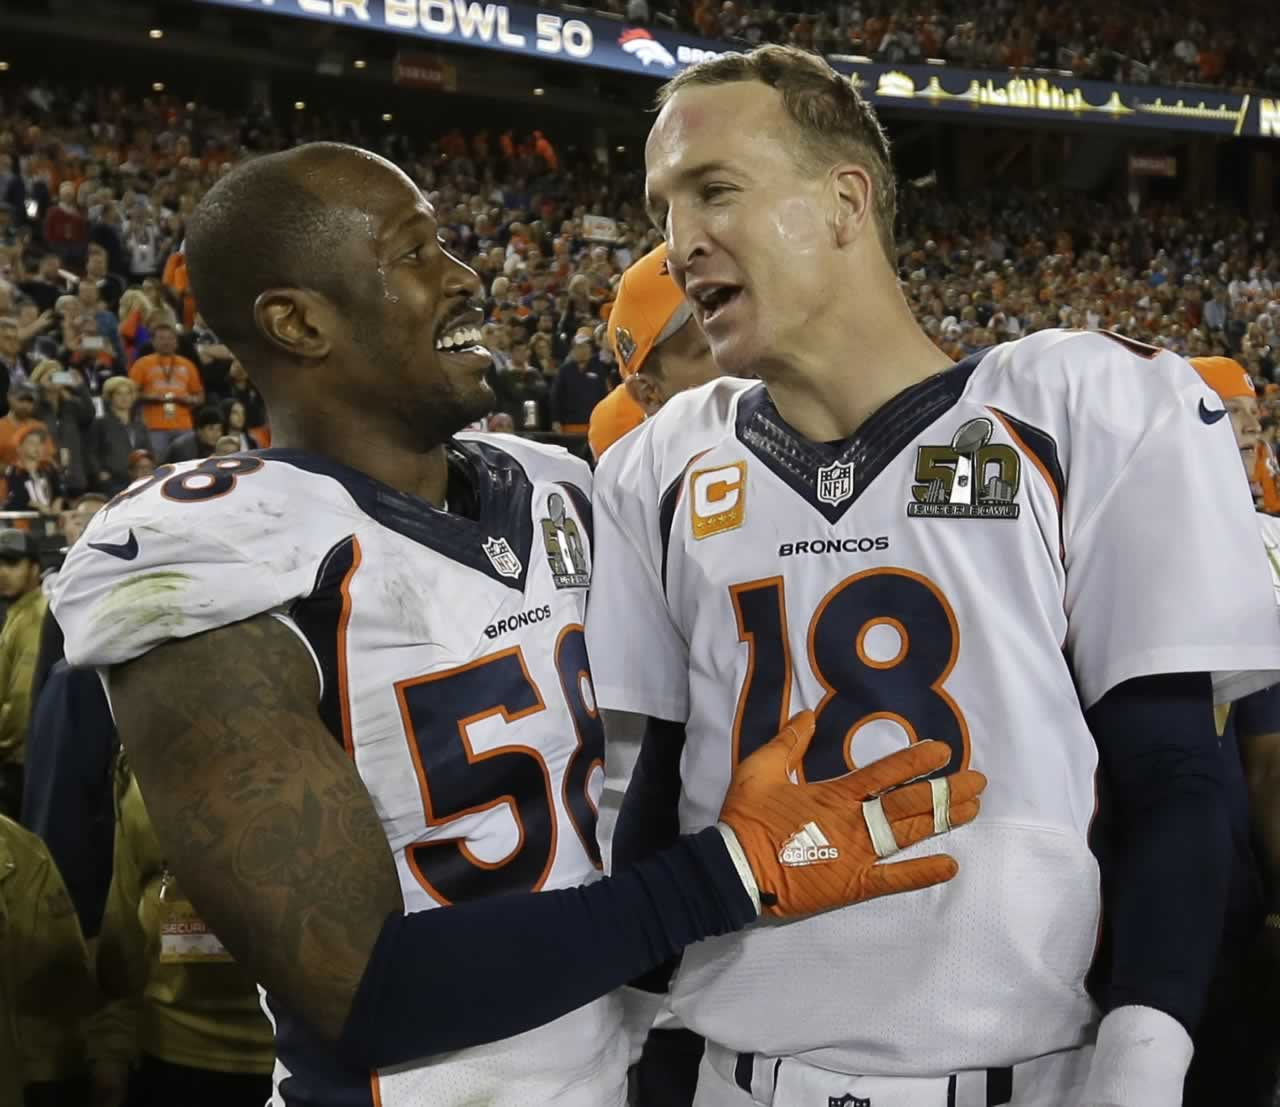 "<div class=""meta image-caption""><div class=""origin-logo origin-image none""><span>none</span></div><span class=""caption-text"">Denver Broncos' Von Miller (58) and Peyton Manning (18) celebrate after the NFL Super Bowl 50 football game Sunday, Feb. 7, 2016, in Santa Clara, Calif. (AP Photo/David J. Phillip)</span></div>"